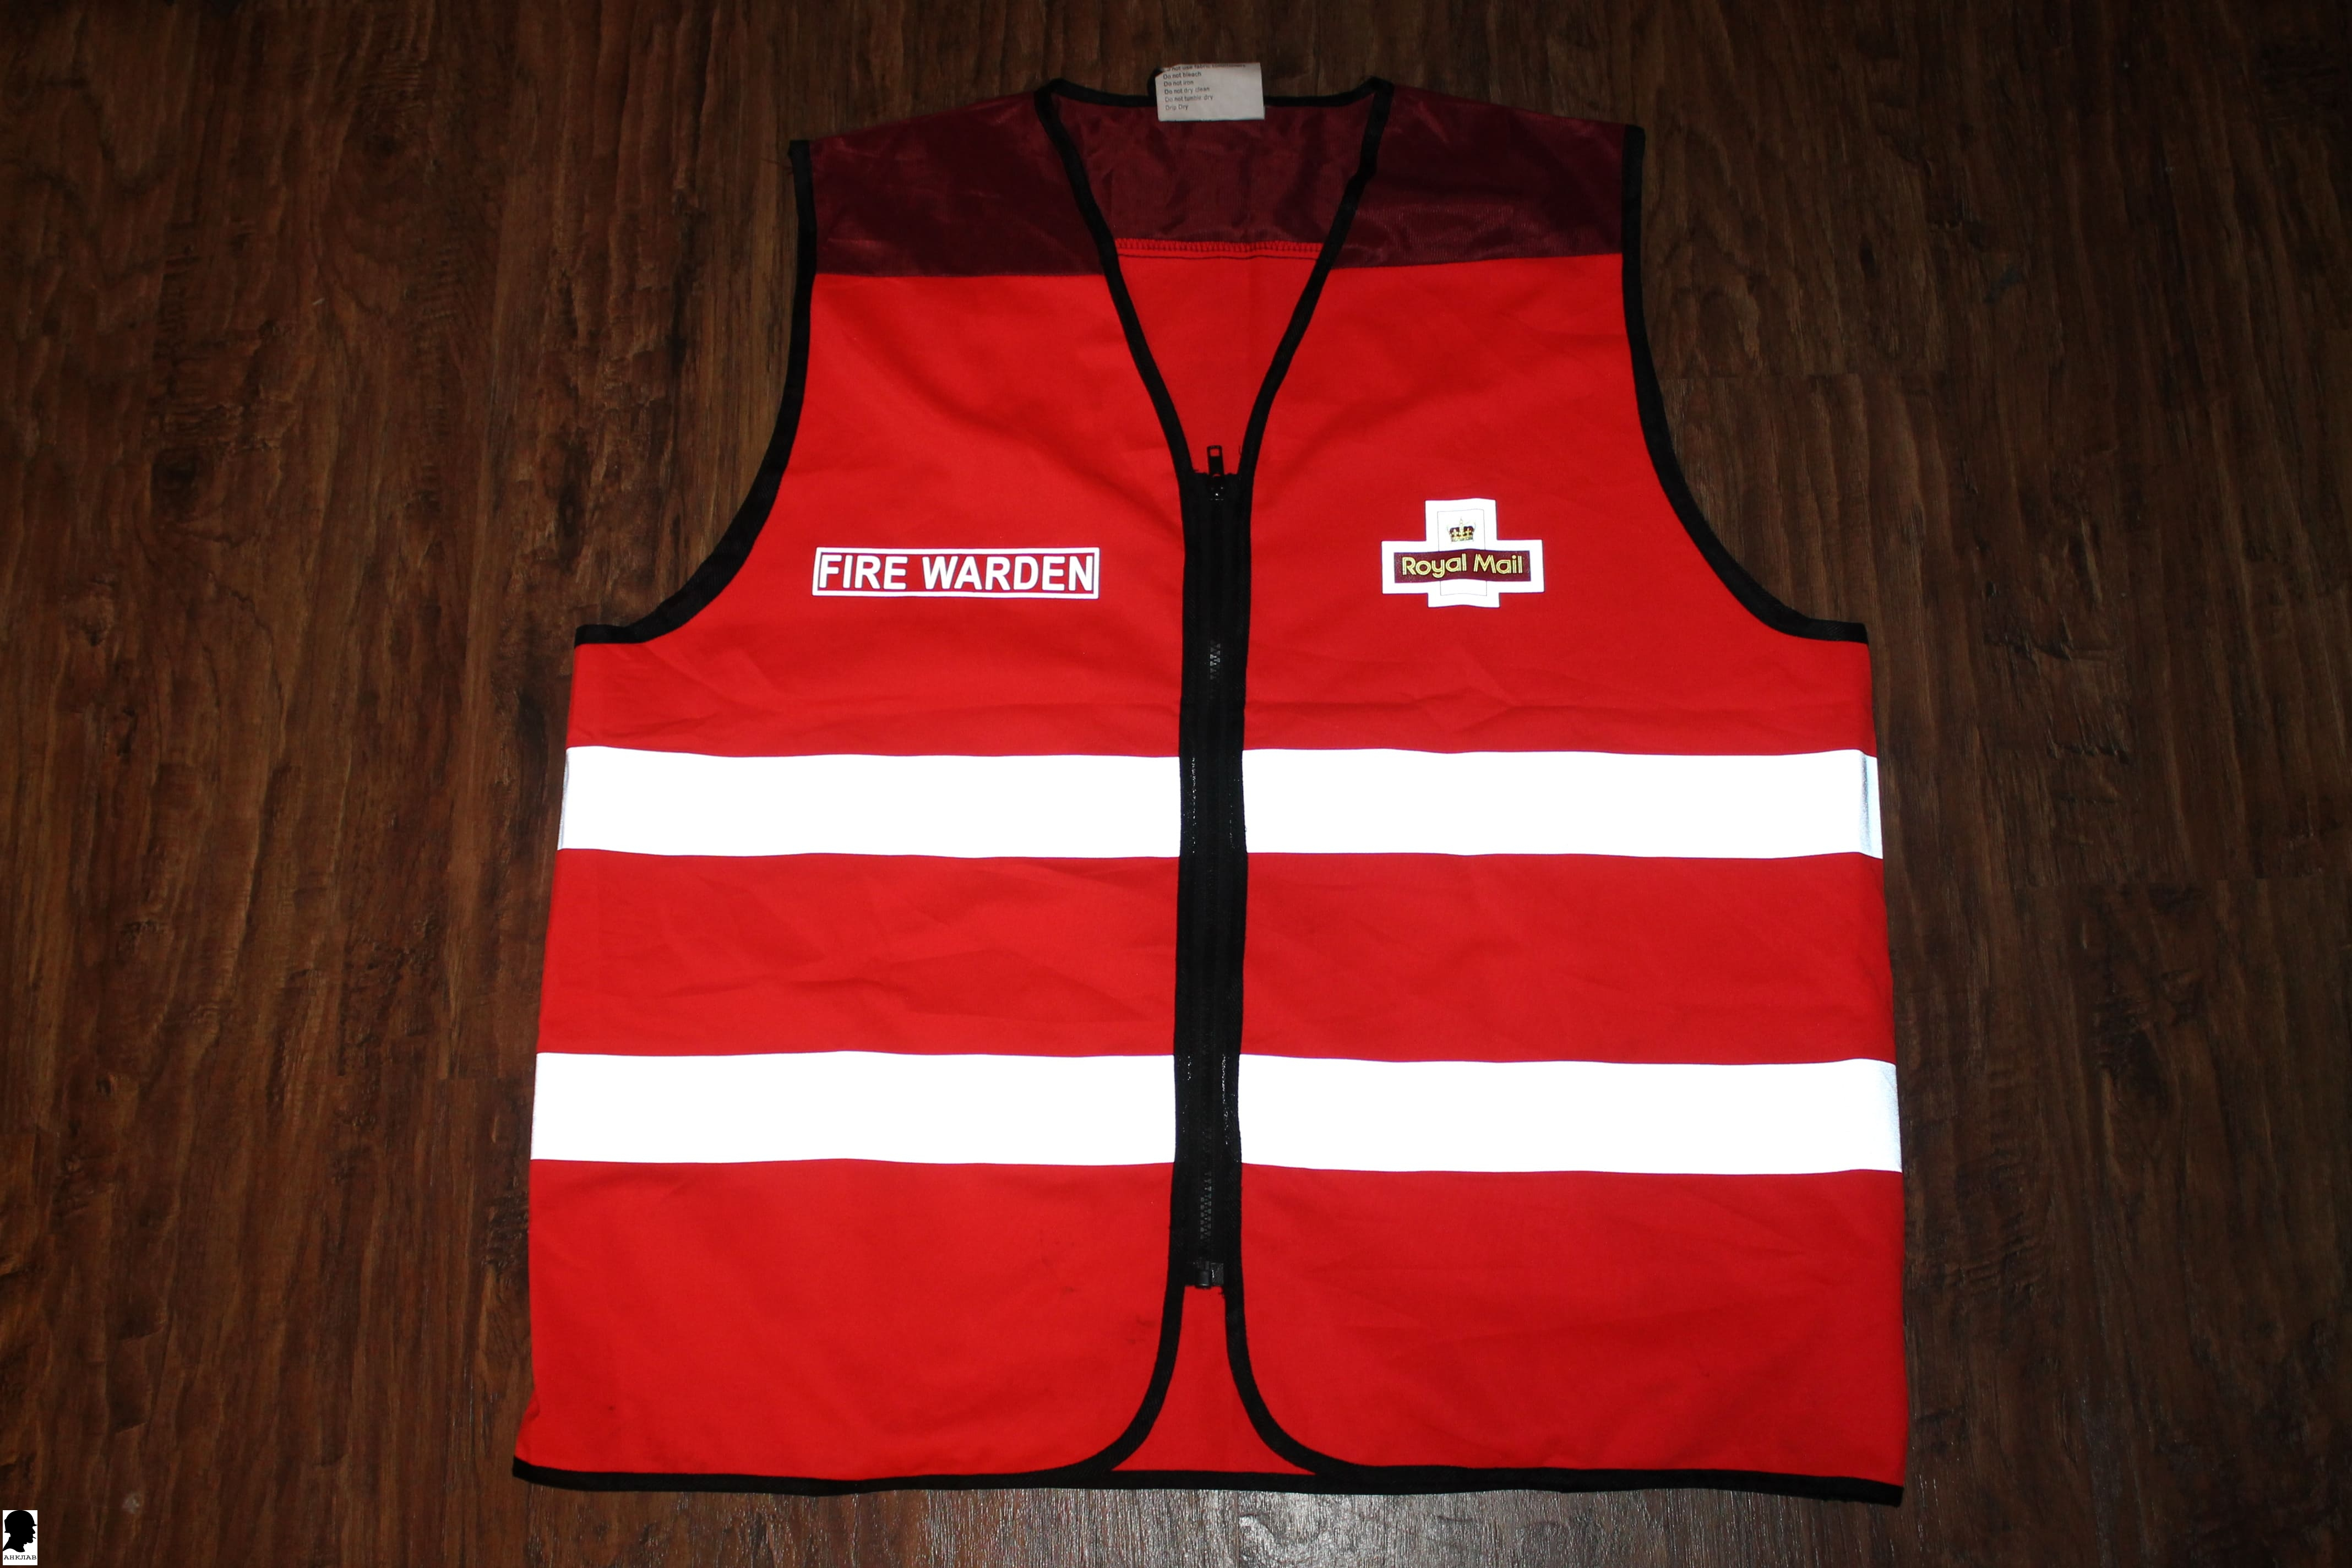 Жилет Royal mail FIRE WARDEN